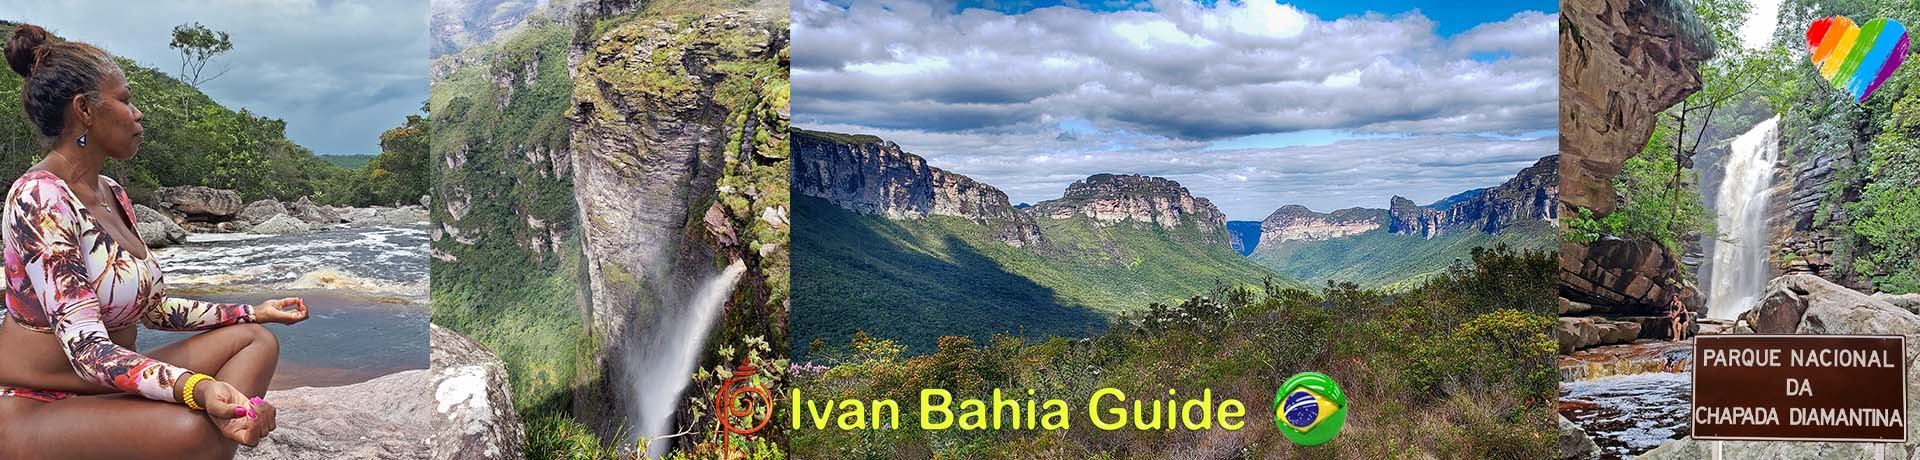 Ivan Bahia & Chapada Diamantina guide / Parc National Chapada Diamantina (connu comme le 'Grand Canyon Brésilien')